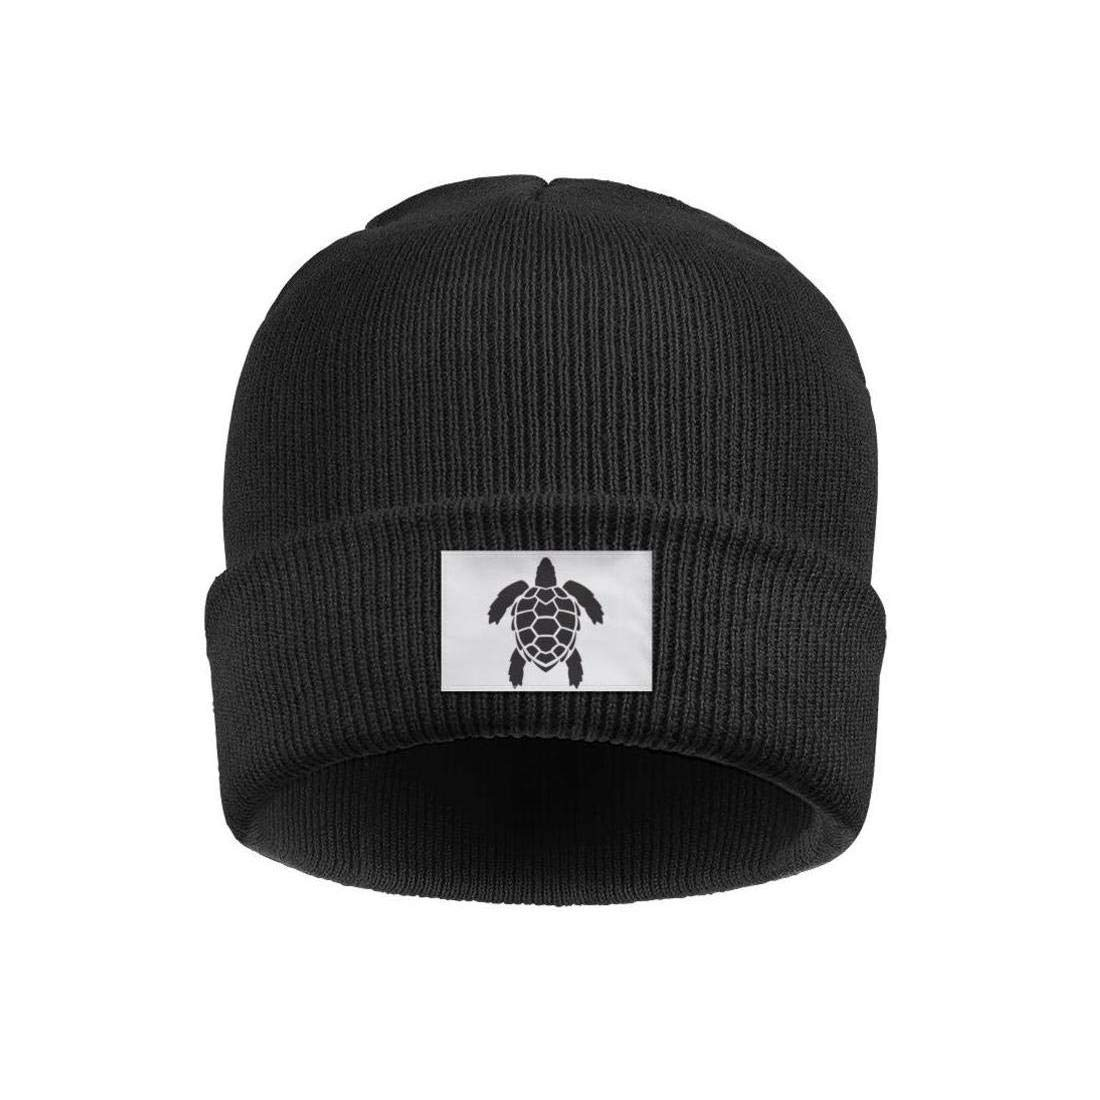 NSKJHYIp Headwear for Mens Womens Cold Weather Solid Color Black Turtle1 Beanies